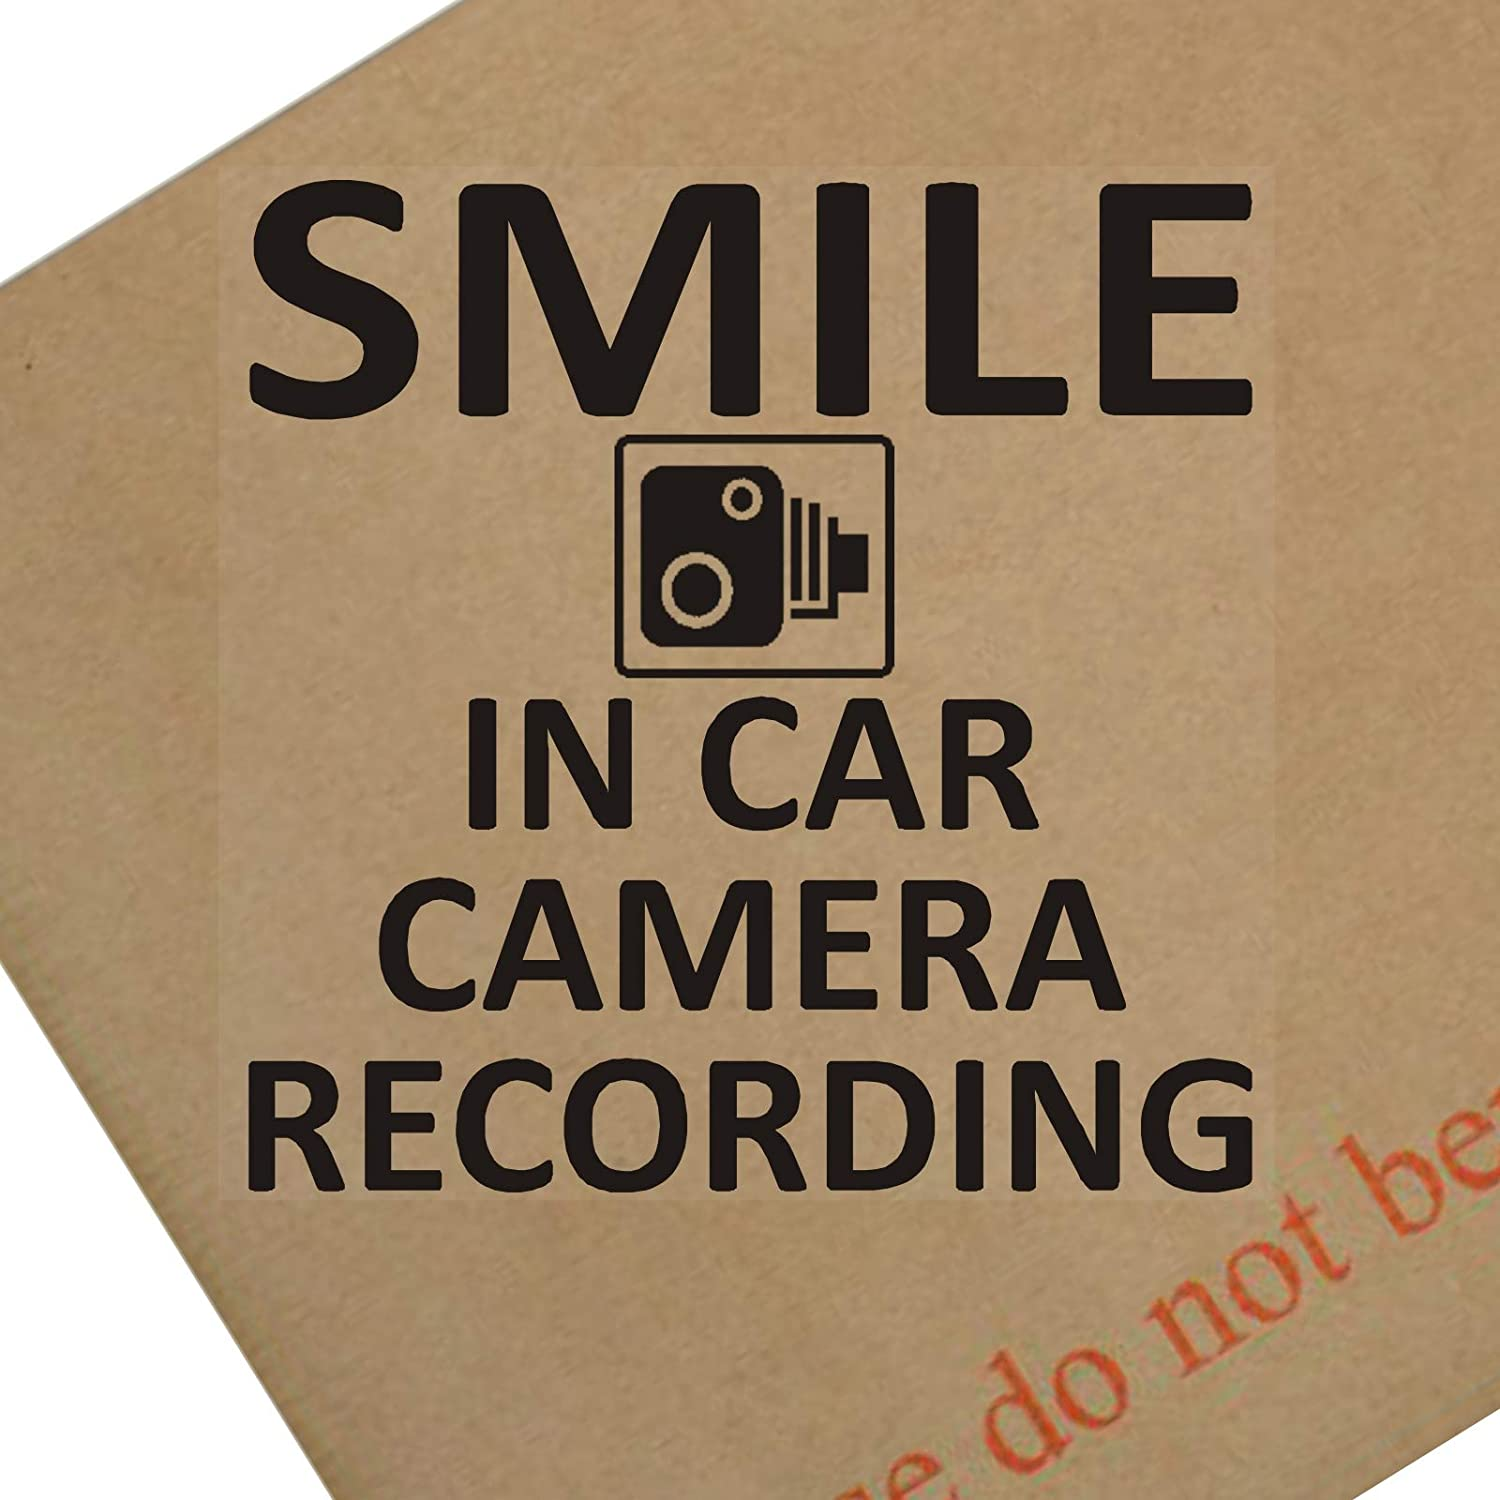 Platinum Place 1 x Smile In Car Camera Recording Window Sticker-BLACK-Smile CCTV Sign-Car, Truck, Taxi, Cab, Warning, Notice